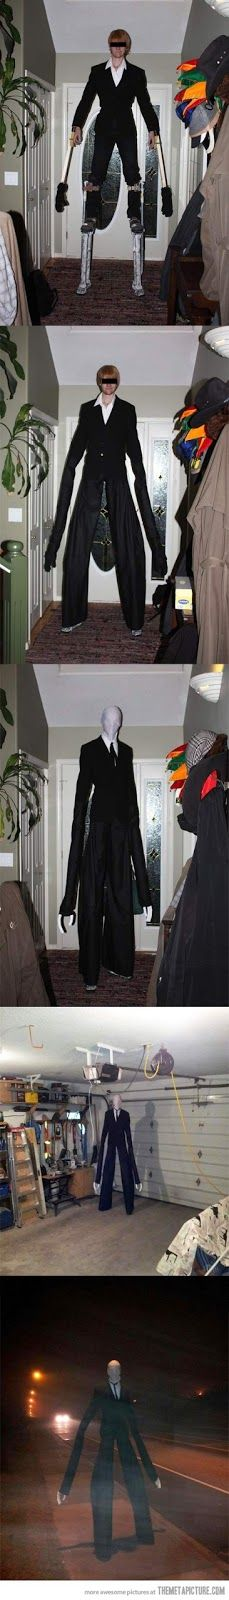 Funny and Cool Halloween Costumes 2013: More Awesome Halloween Costume Ideas 2013